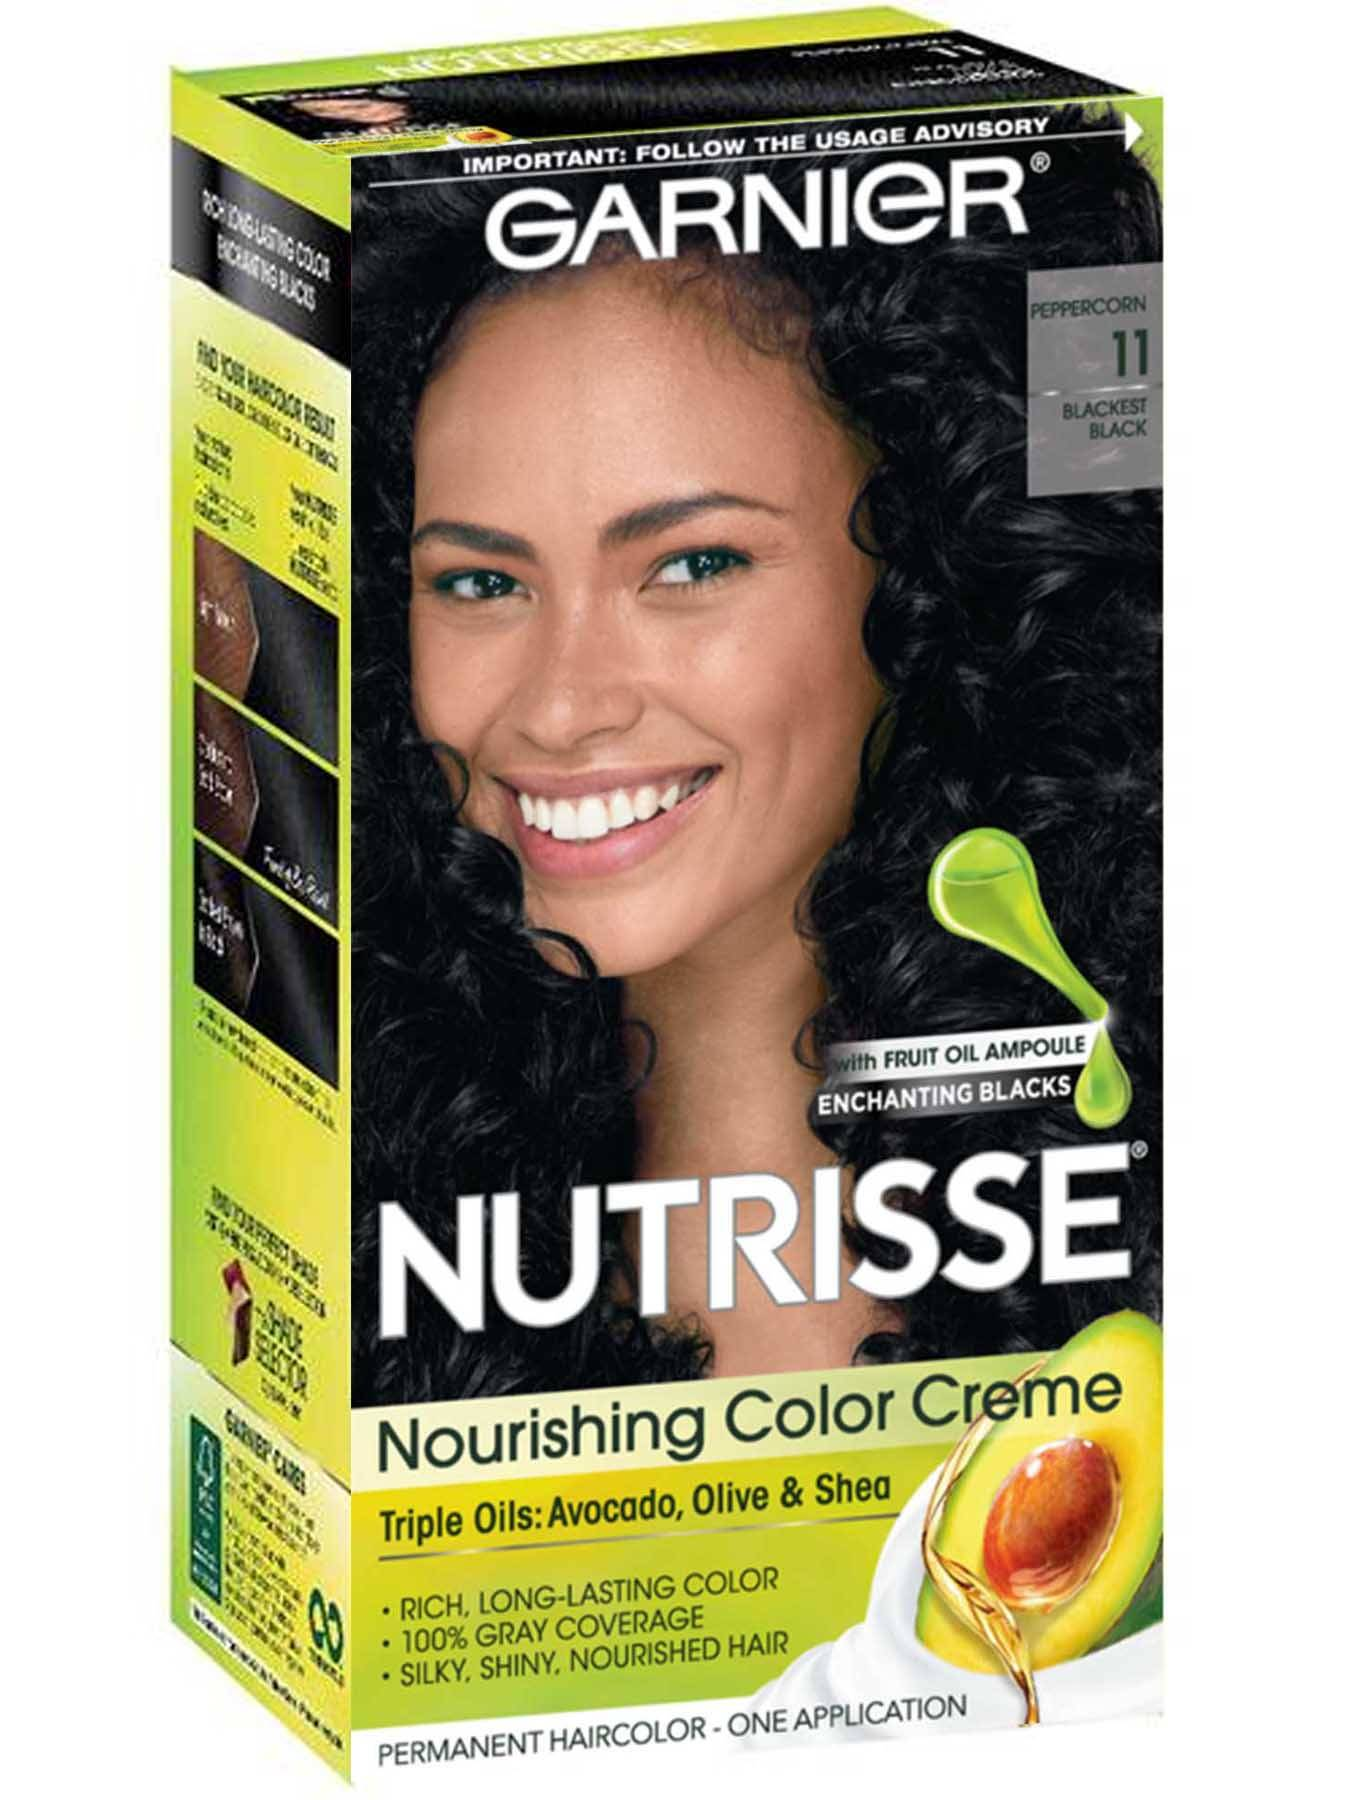 Nourishing Color Creme 11 - Blackest Black Hair Color - Garnier